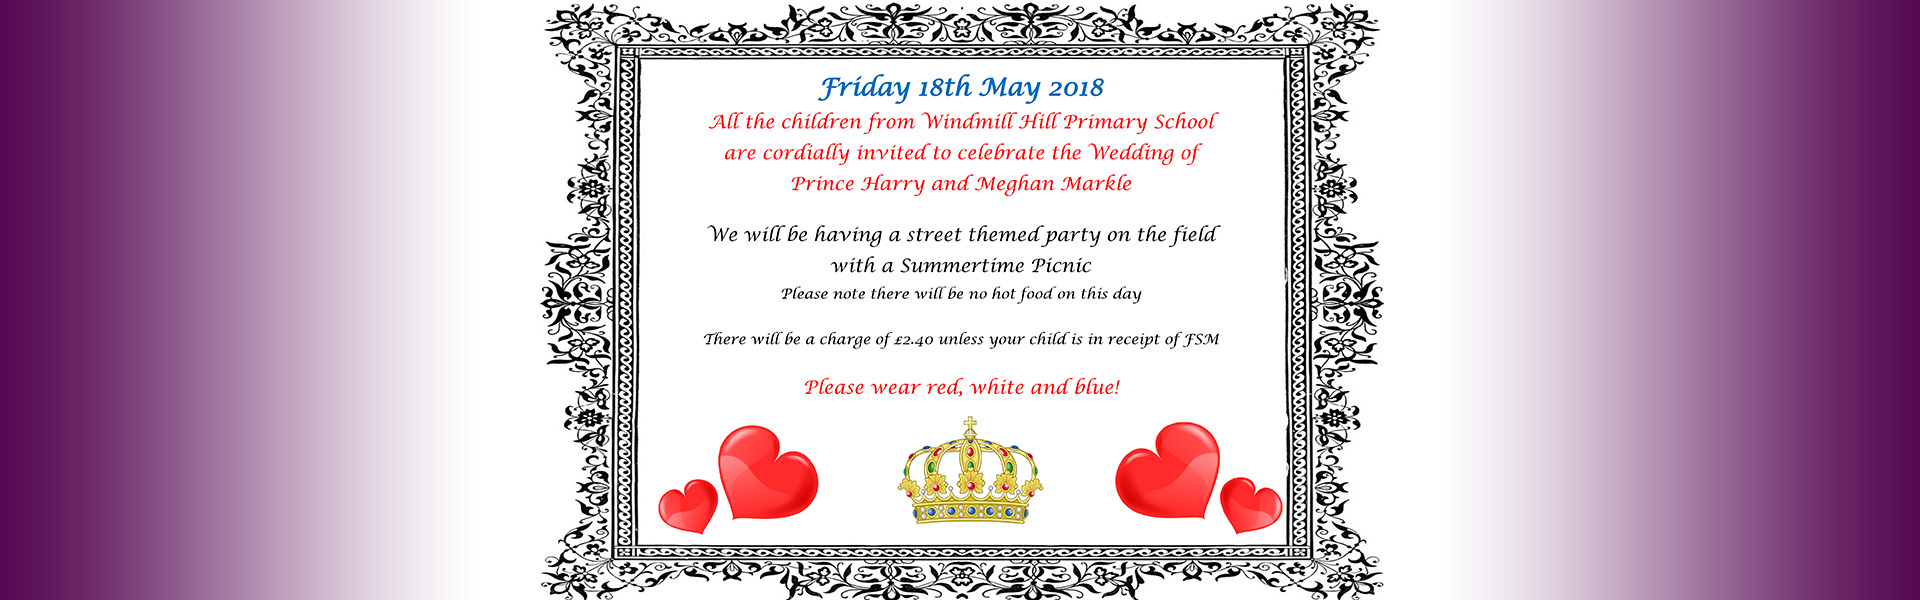 windmill-hill-school-royal-wedding-celebrations-1